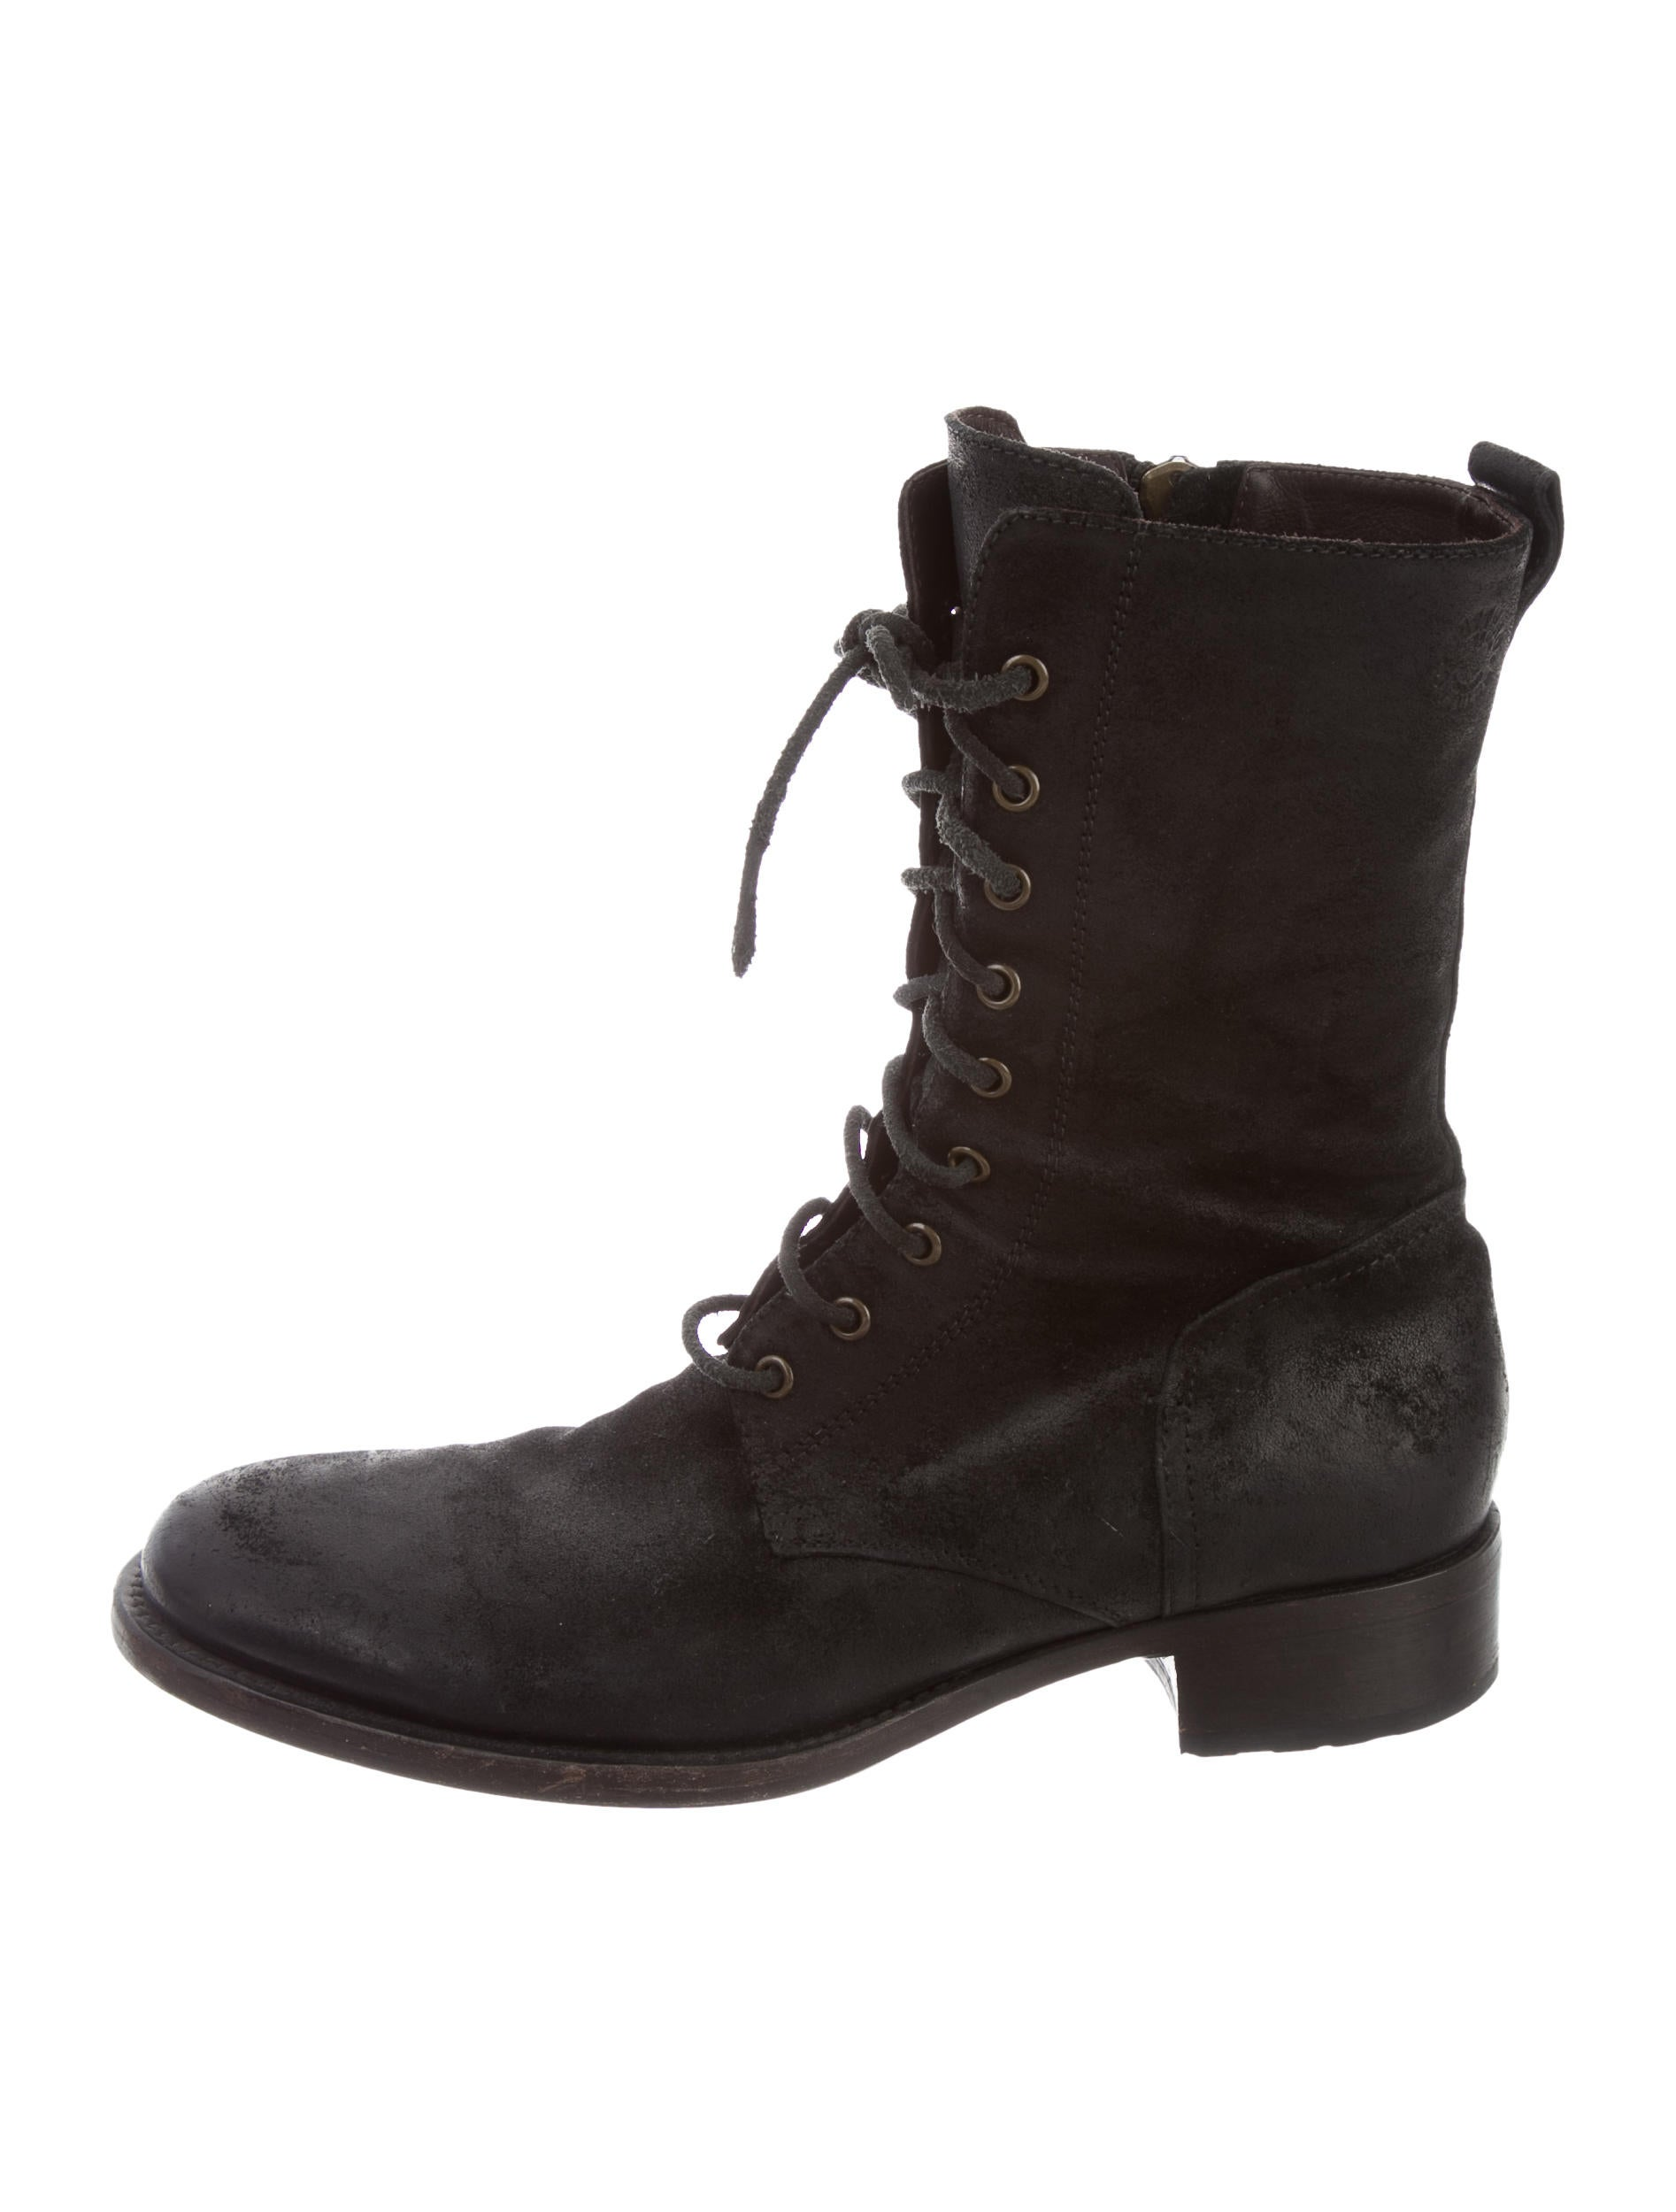 buttero distressed suede boots shoes w6b20027 the